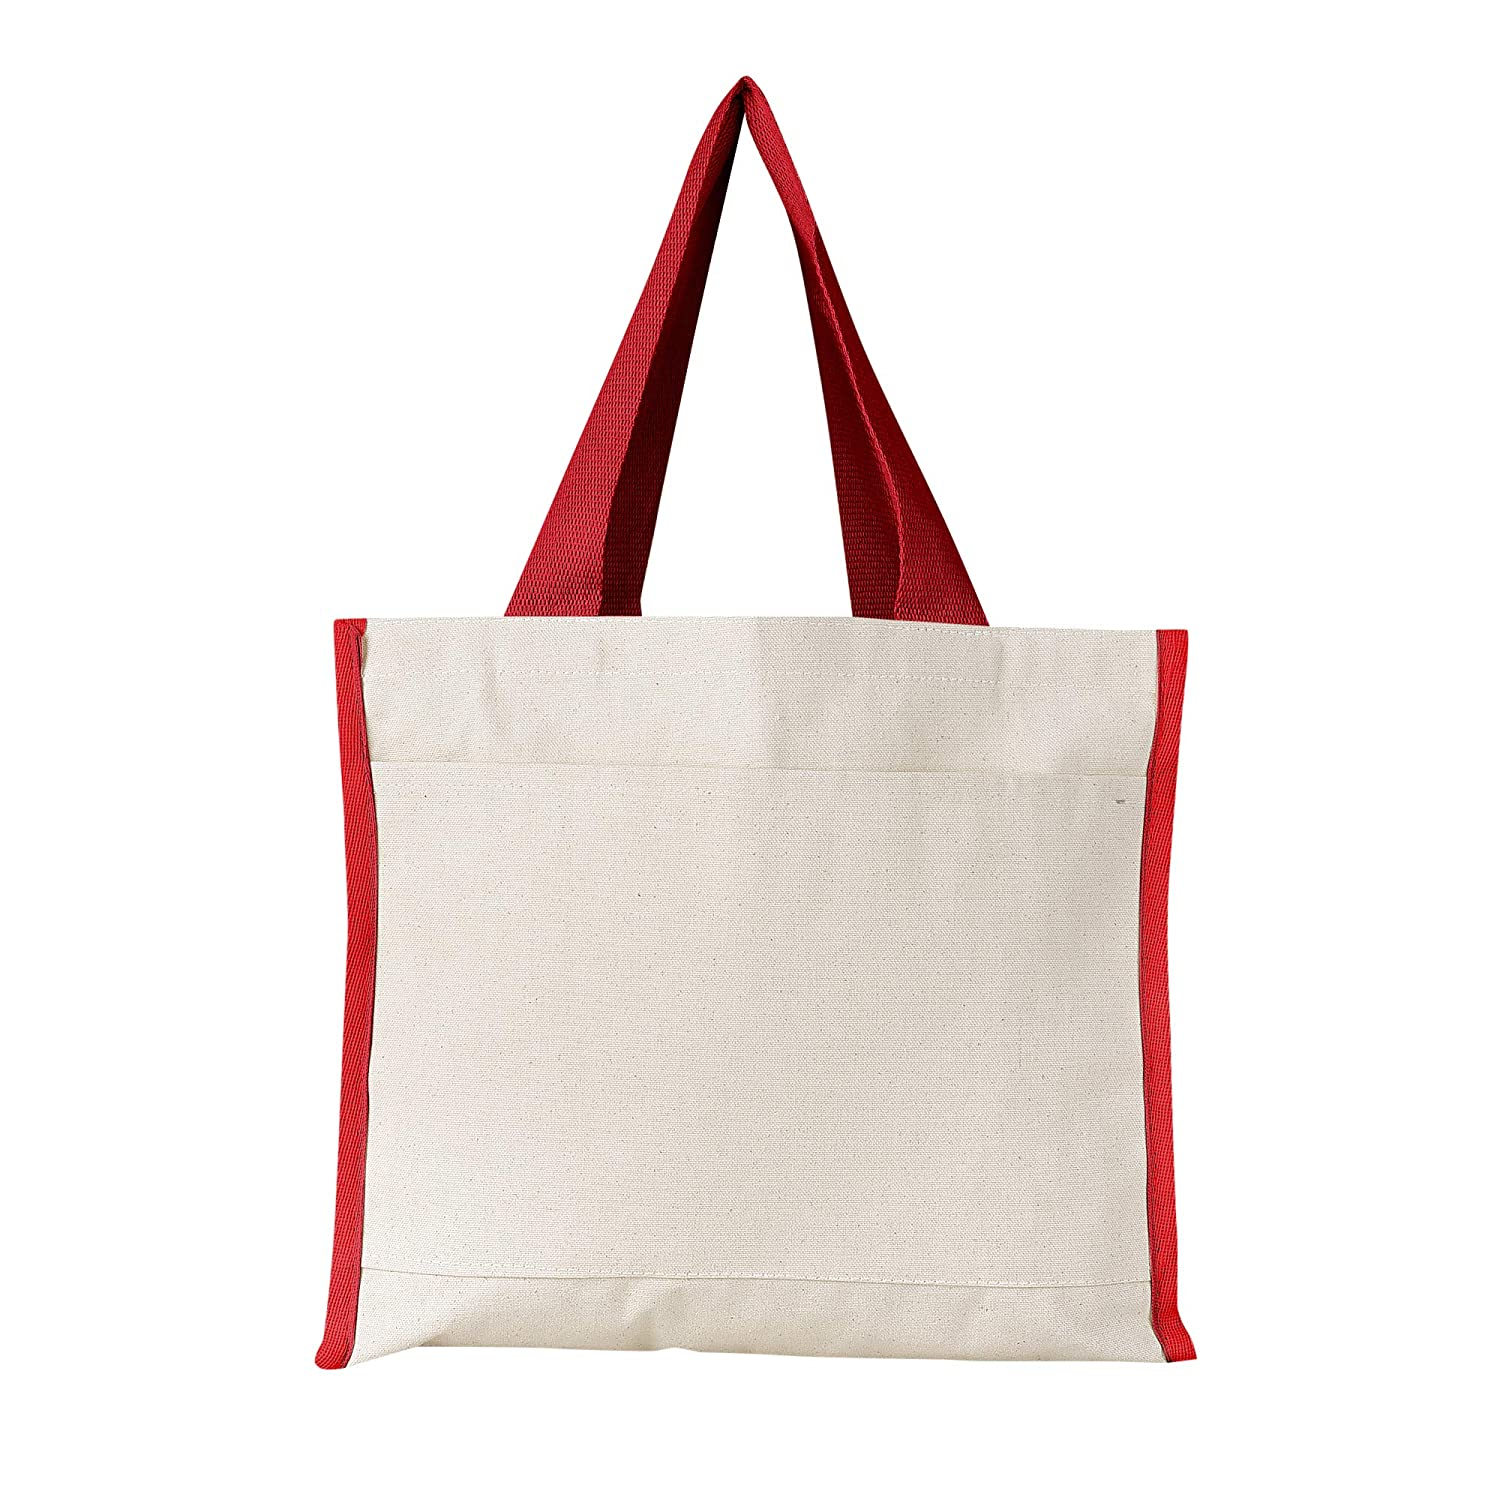 (6, Natural) - Heavy Canvas Reusable Tote Bags with Front Pocket, Side and Bottom Gussets, Fancy Looking Plain Tote Bags, 100% Natural Canvas Strong Wholesale Tote Bags by BagzDepot (6, Natural) B06XDW1PC4 レッド  レッド|6, 石田スポーツ BRIO 1e934cb9